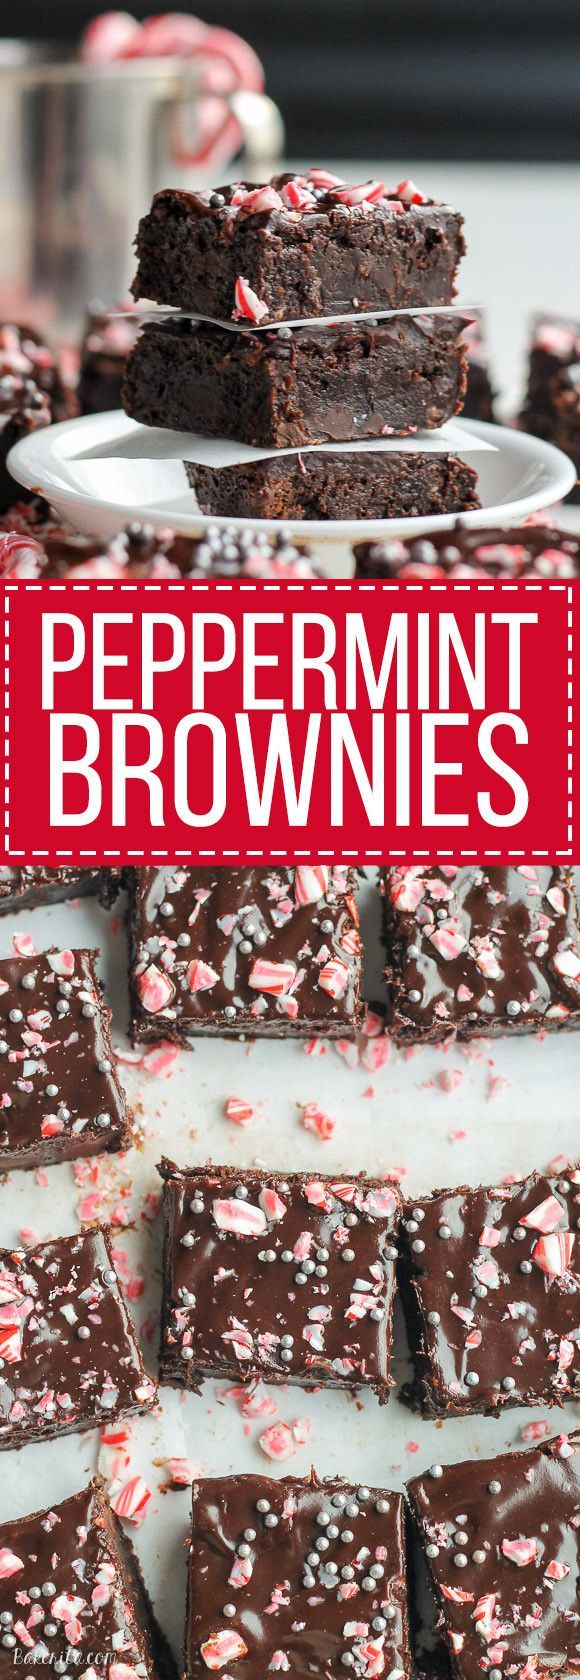 ... brownie recipe is topped with dark chocolate ganache and crushed candy